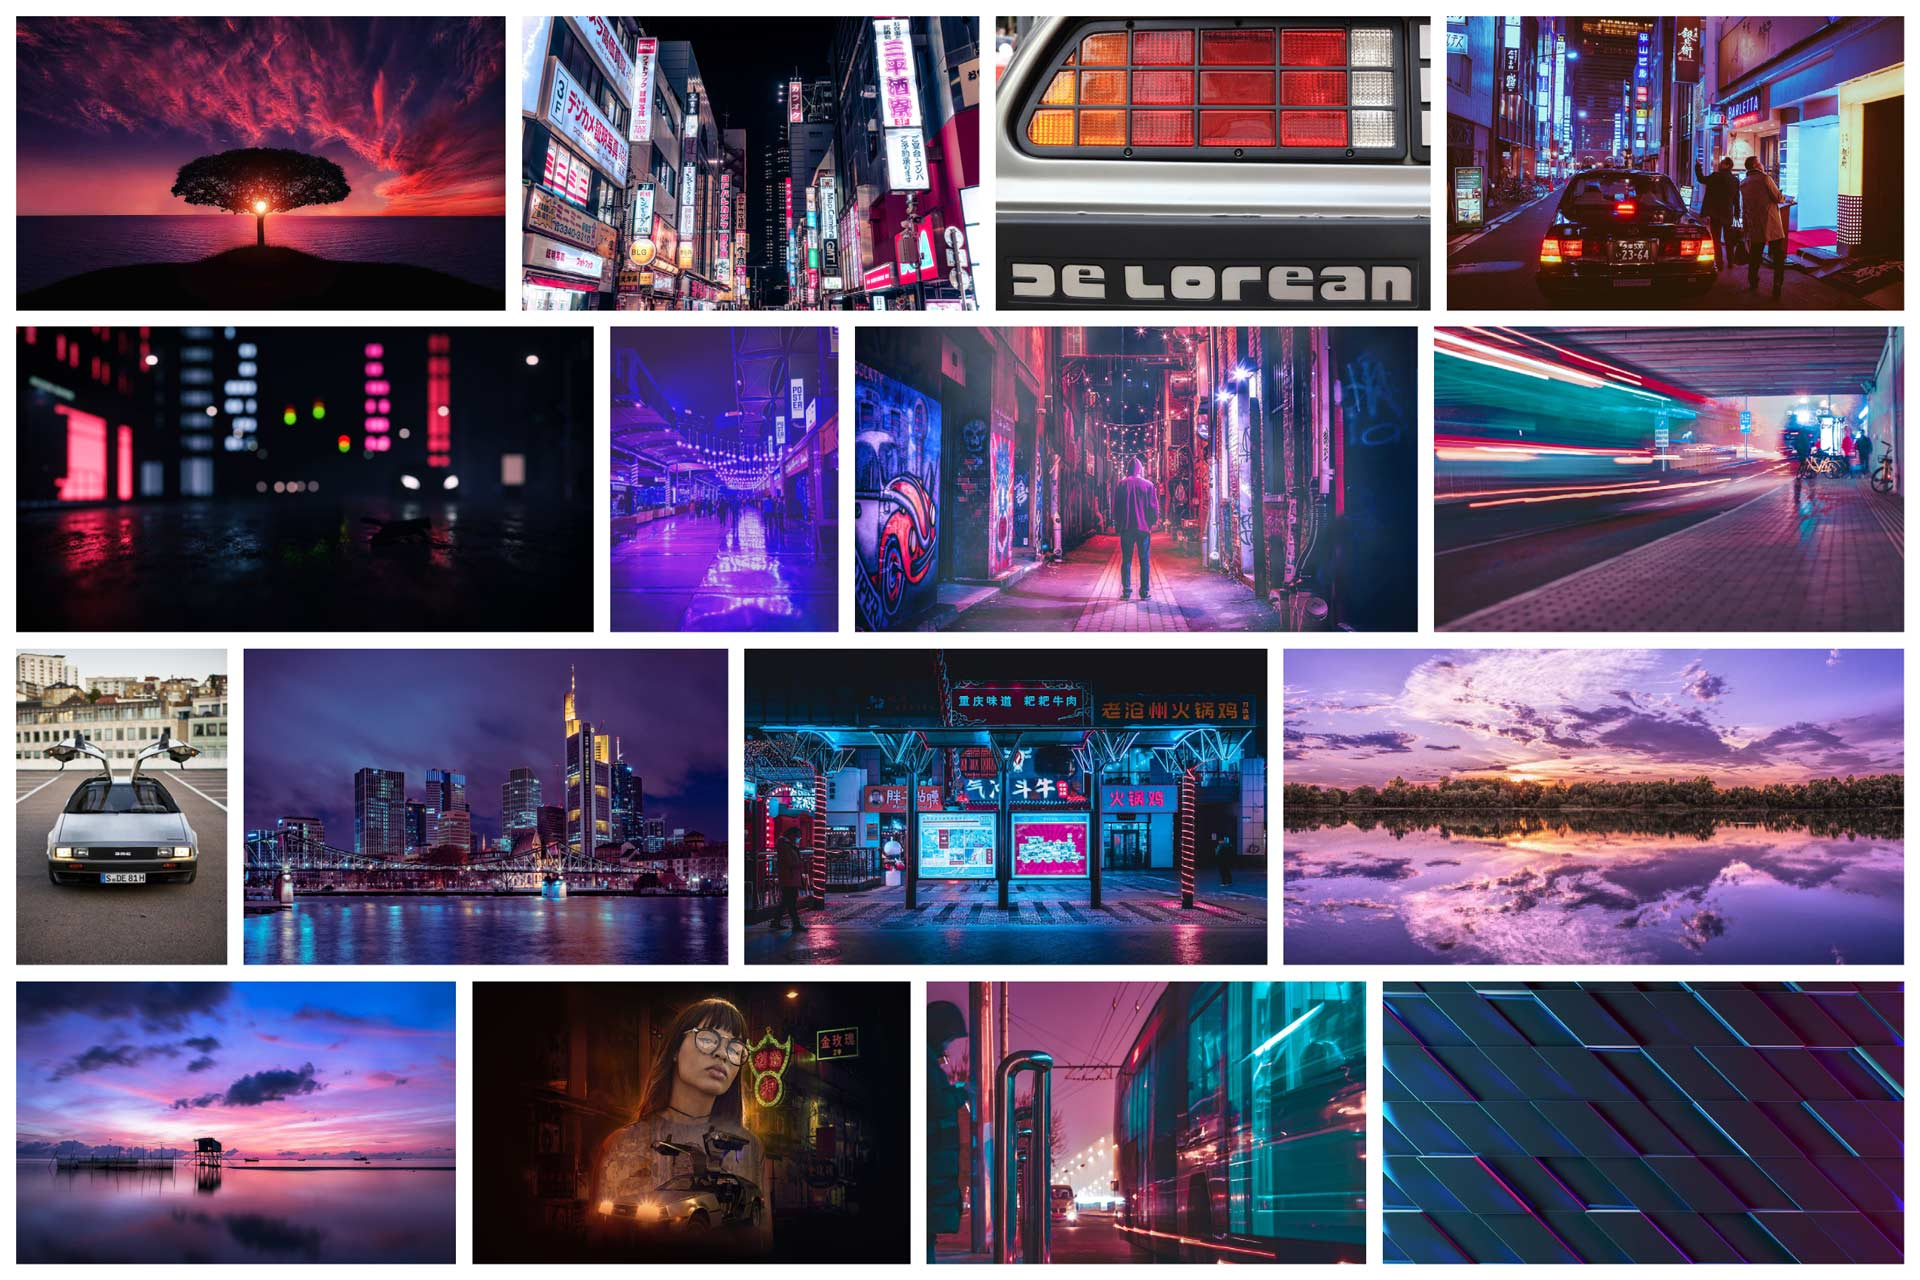 series of images with a purple and sunset theme